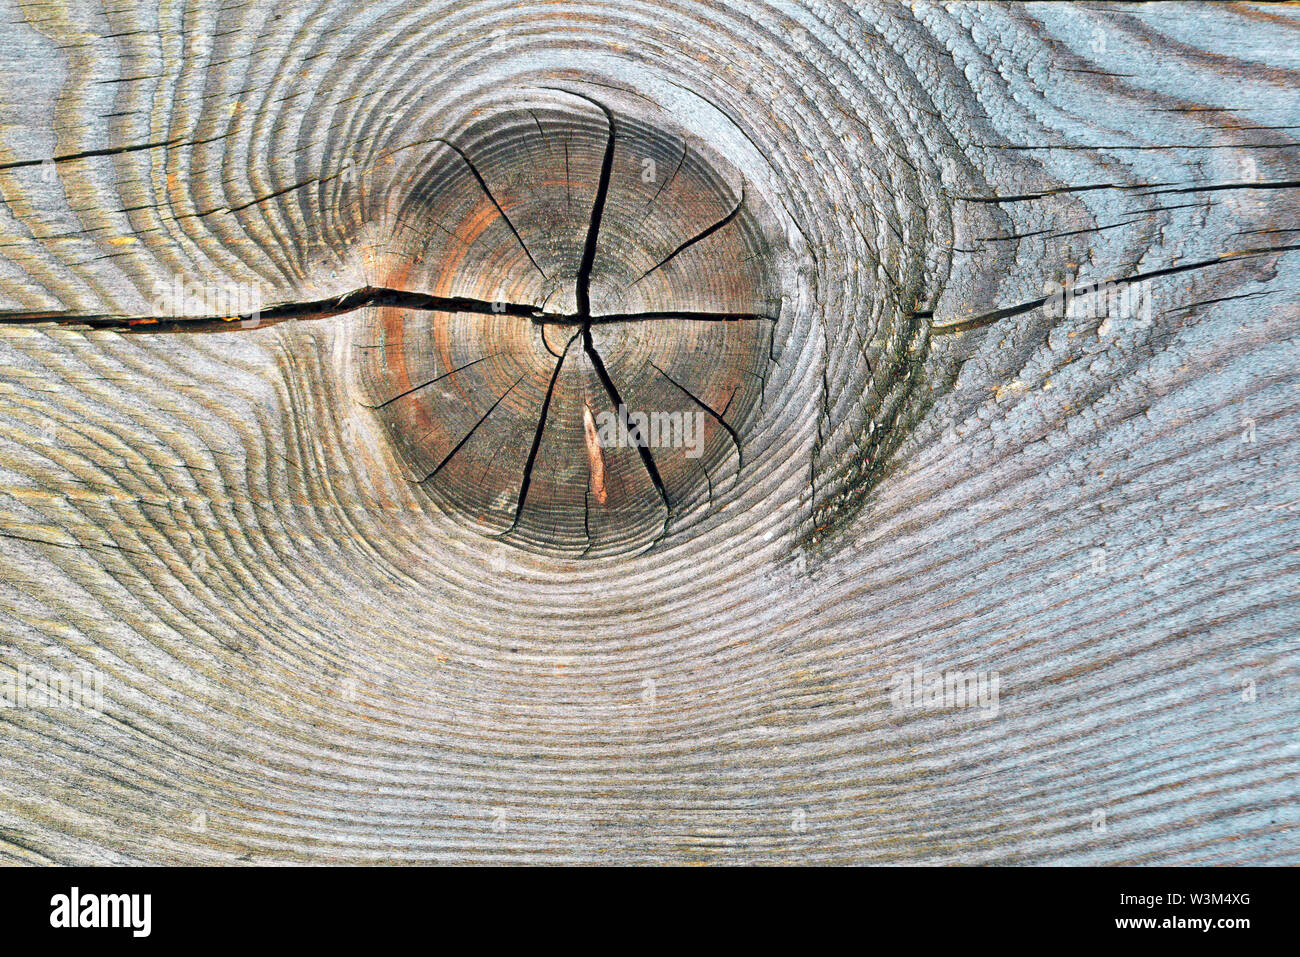 The texture of the slice of the old rotten stump with cracks and annual rings. Stock Photo